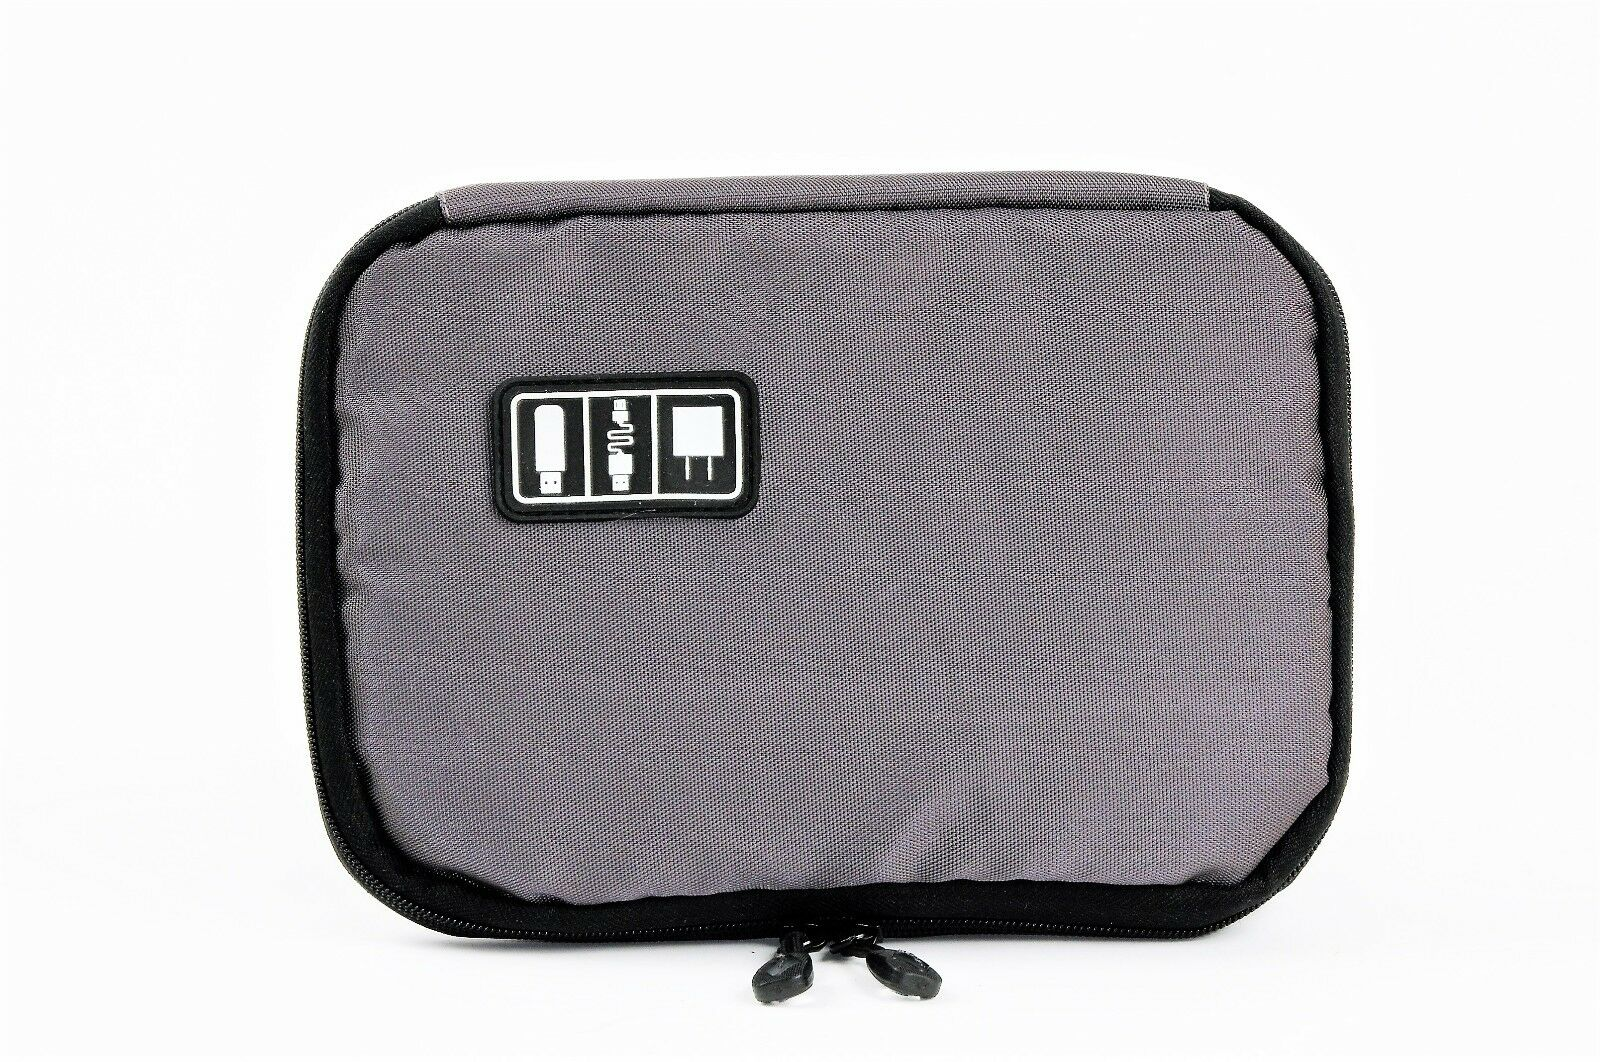 Tech Accessory Organizer Charger Cord Electronics Gadget Bag Cable 1 Of 4 See More